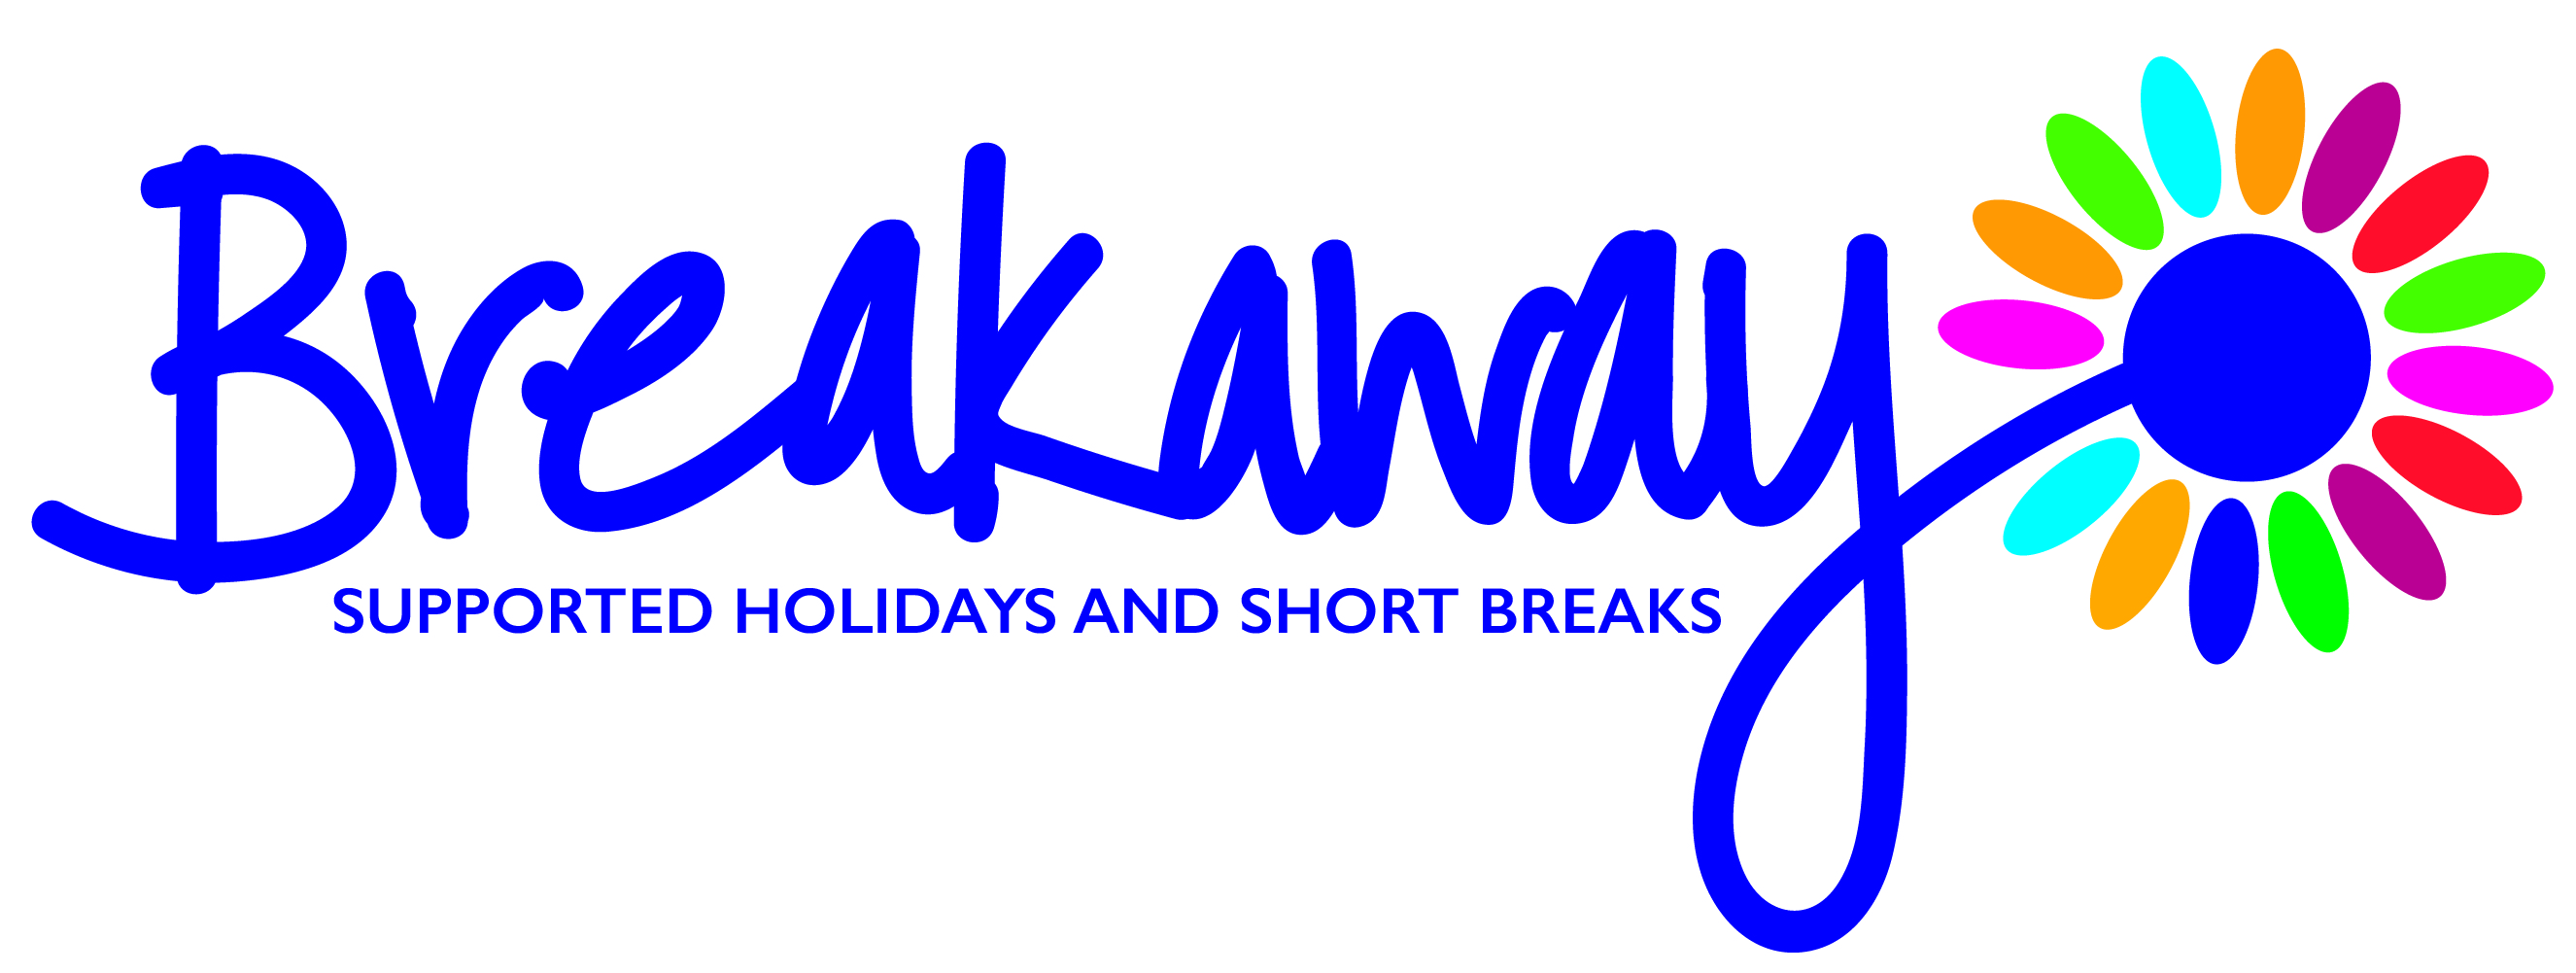 Breakaway Supported Holidays